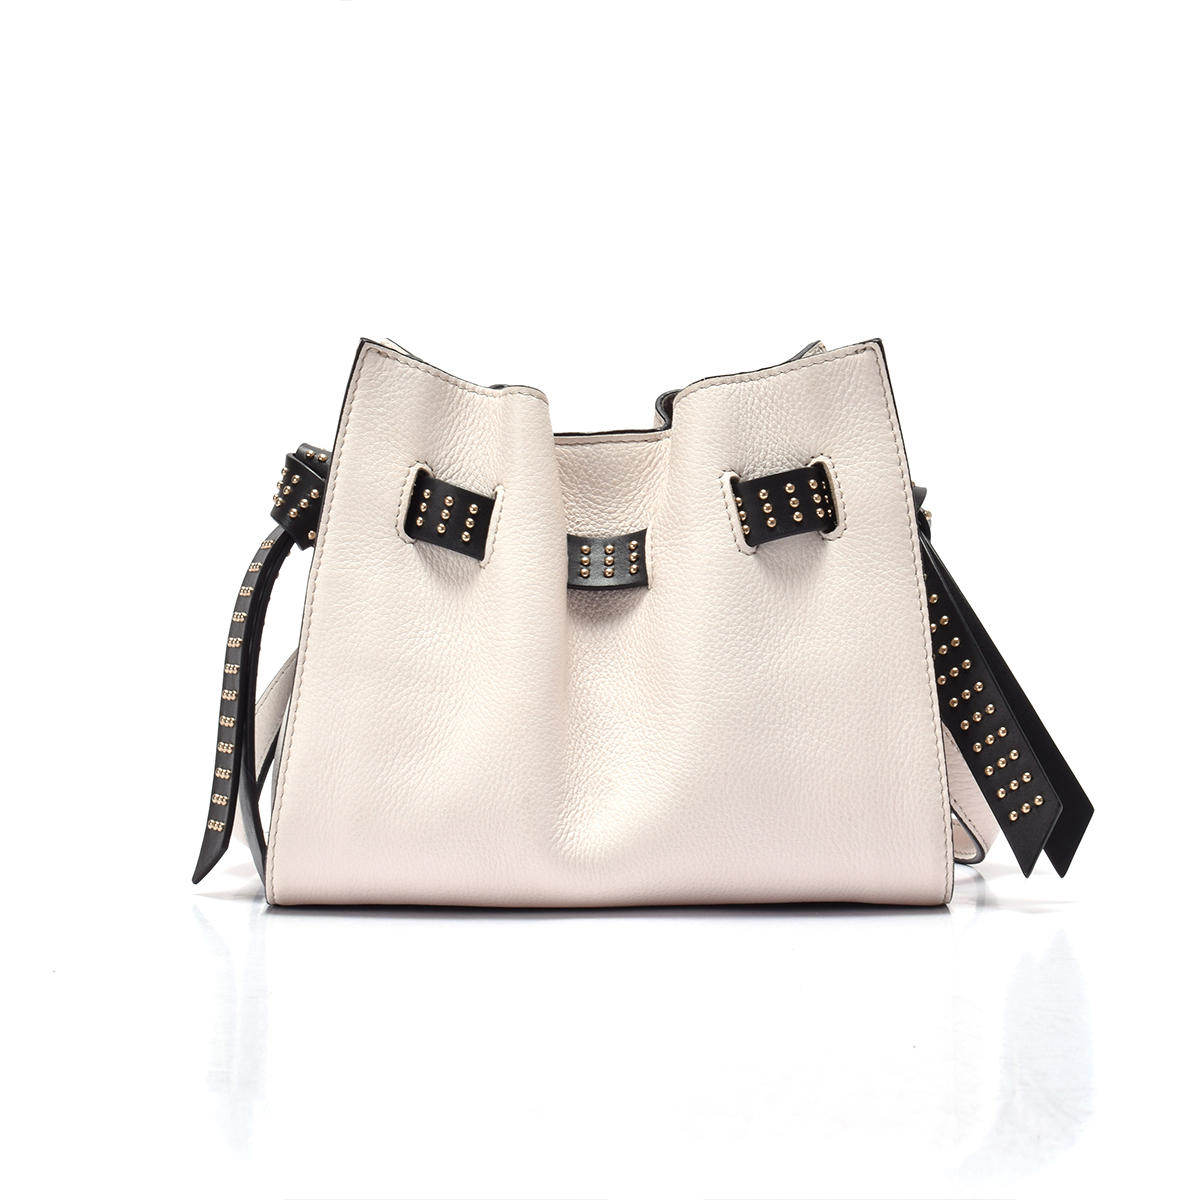 Leather shoulder bag /crossbody